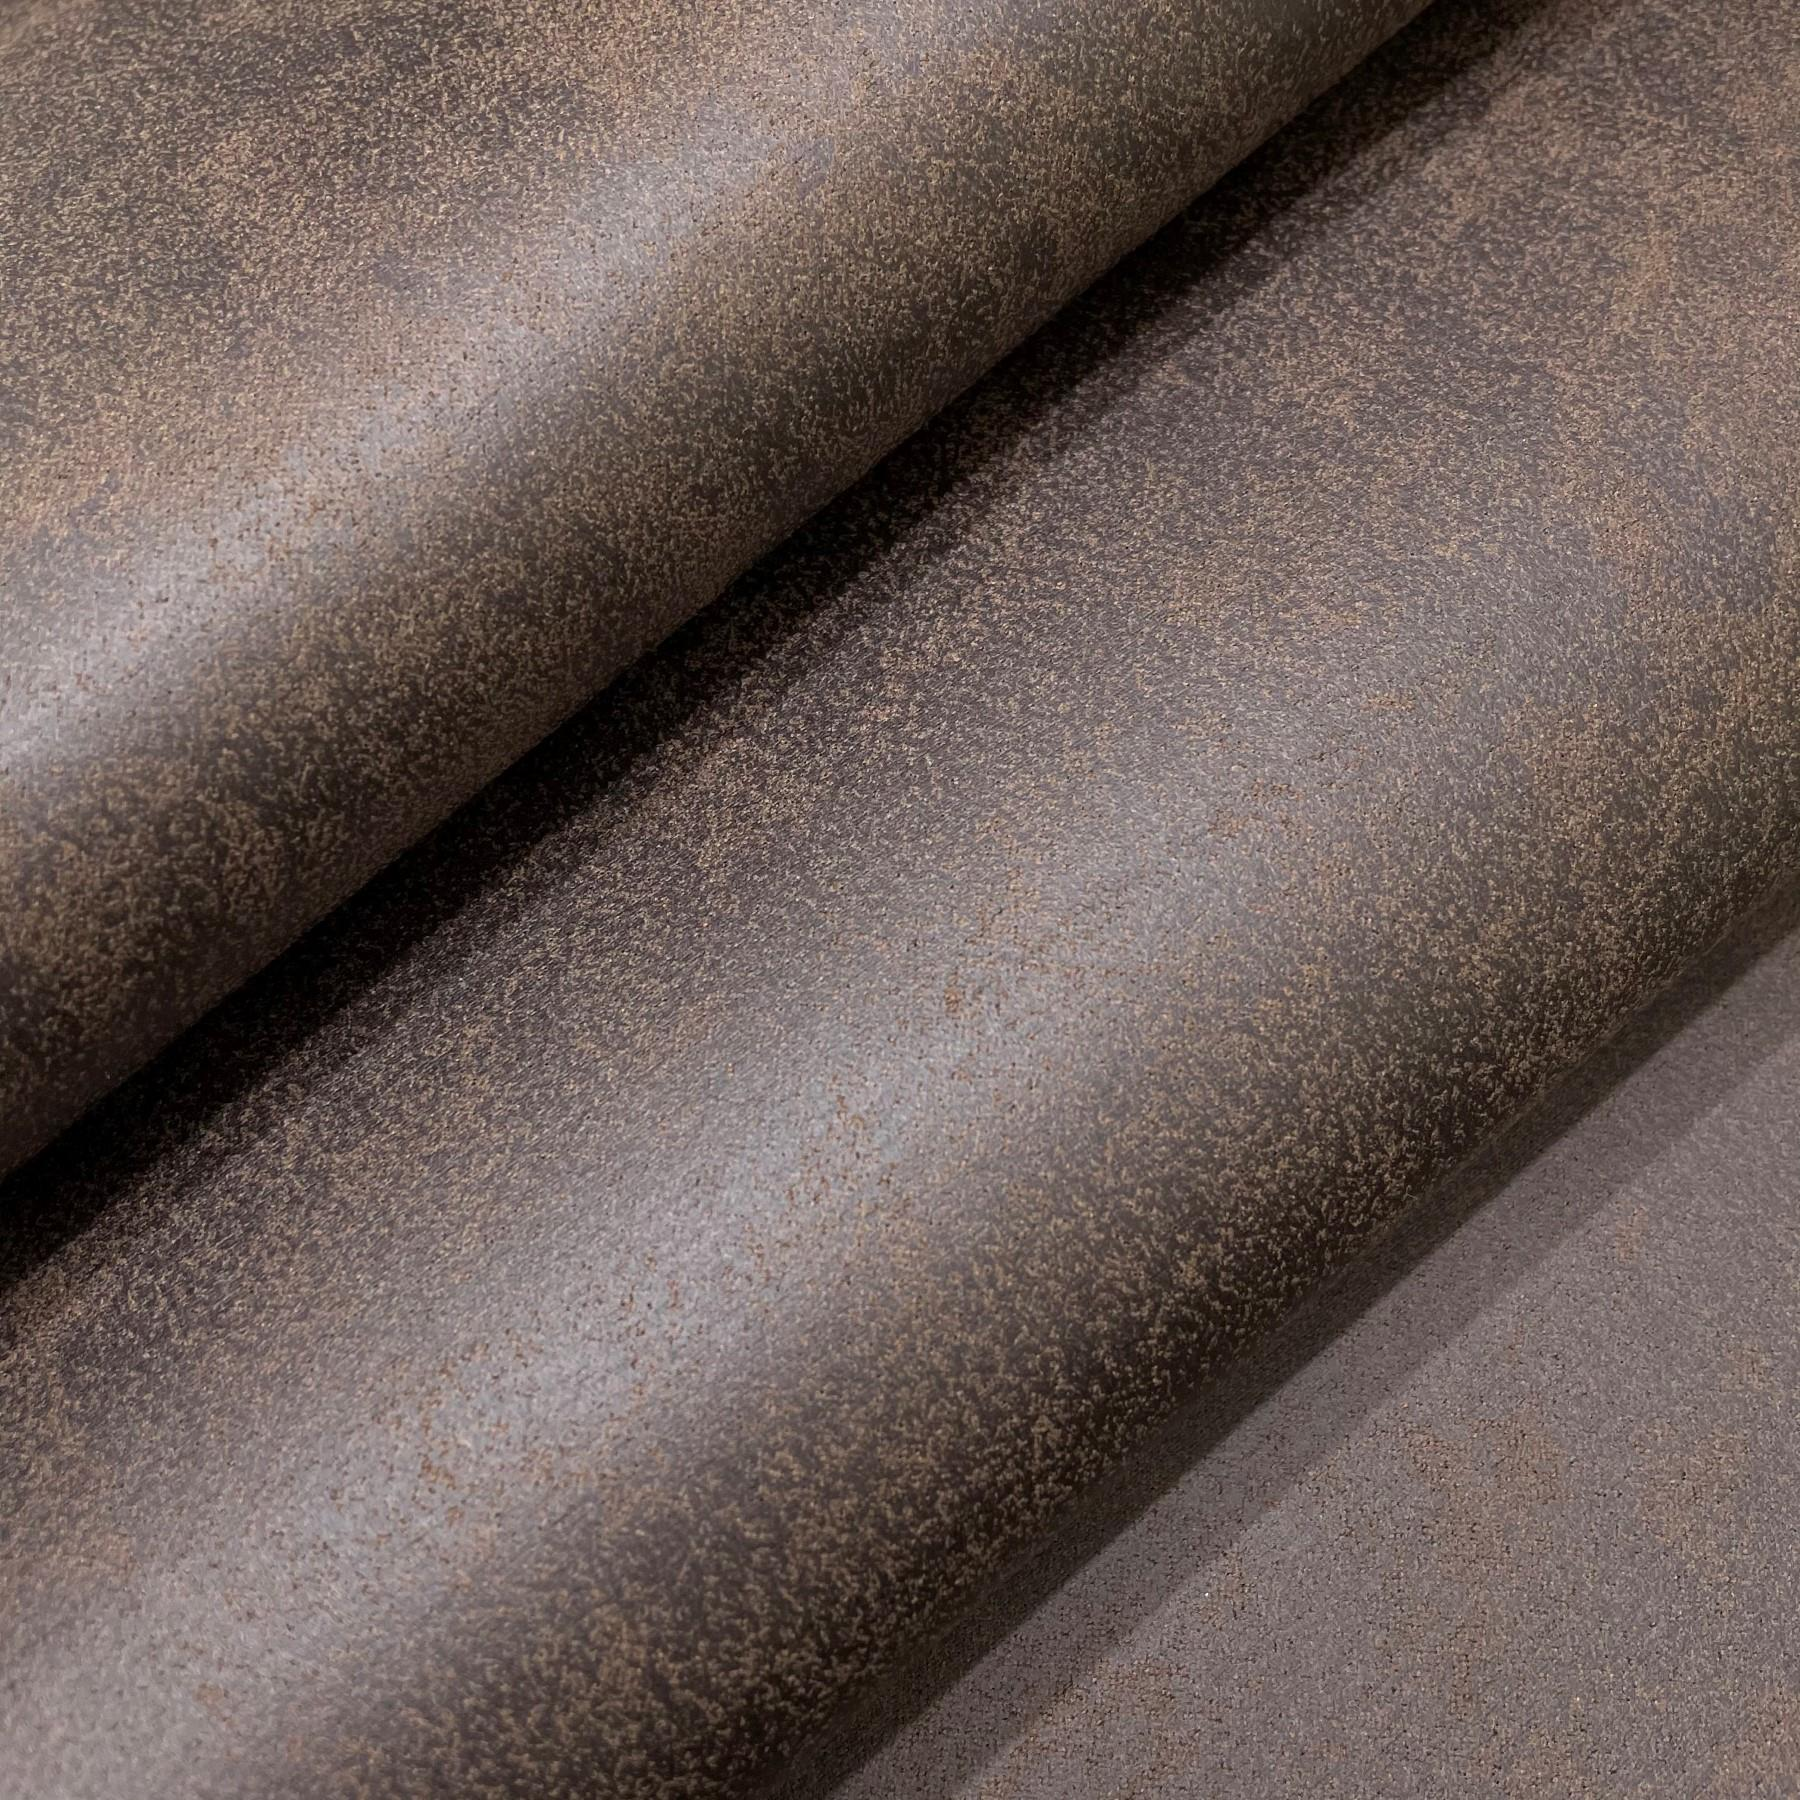 thumbnail 30 - AGED BROWN DISTRESSED ANTIQUED SUEDE FAUX LEATHER LEATHERETTE UPHOLSTERY FABRIC